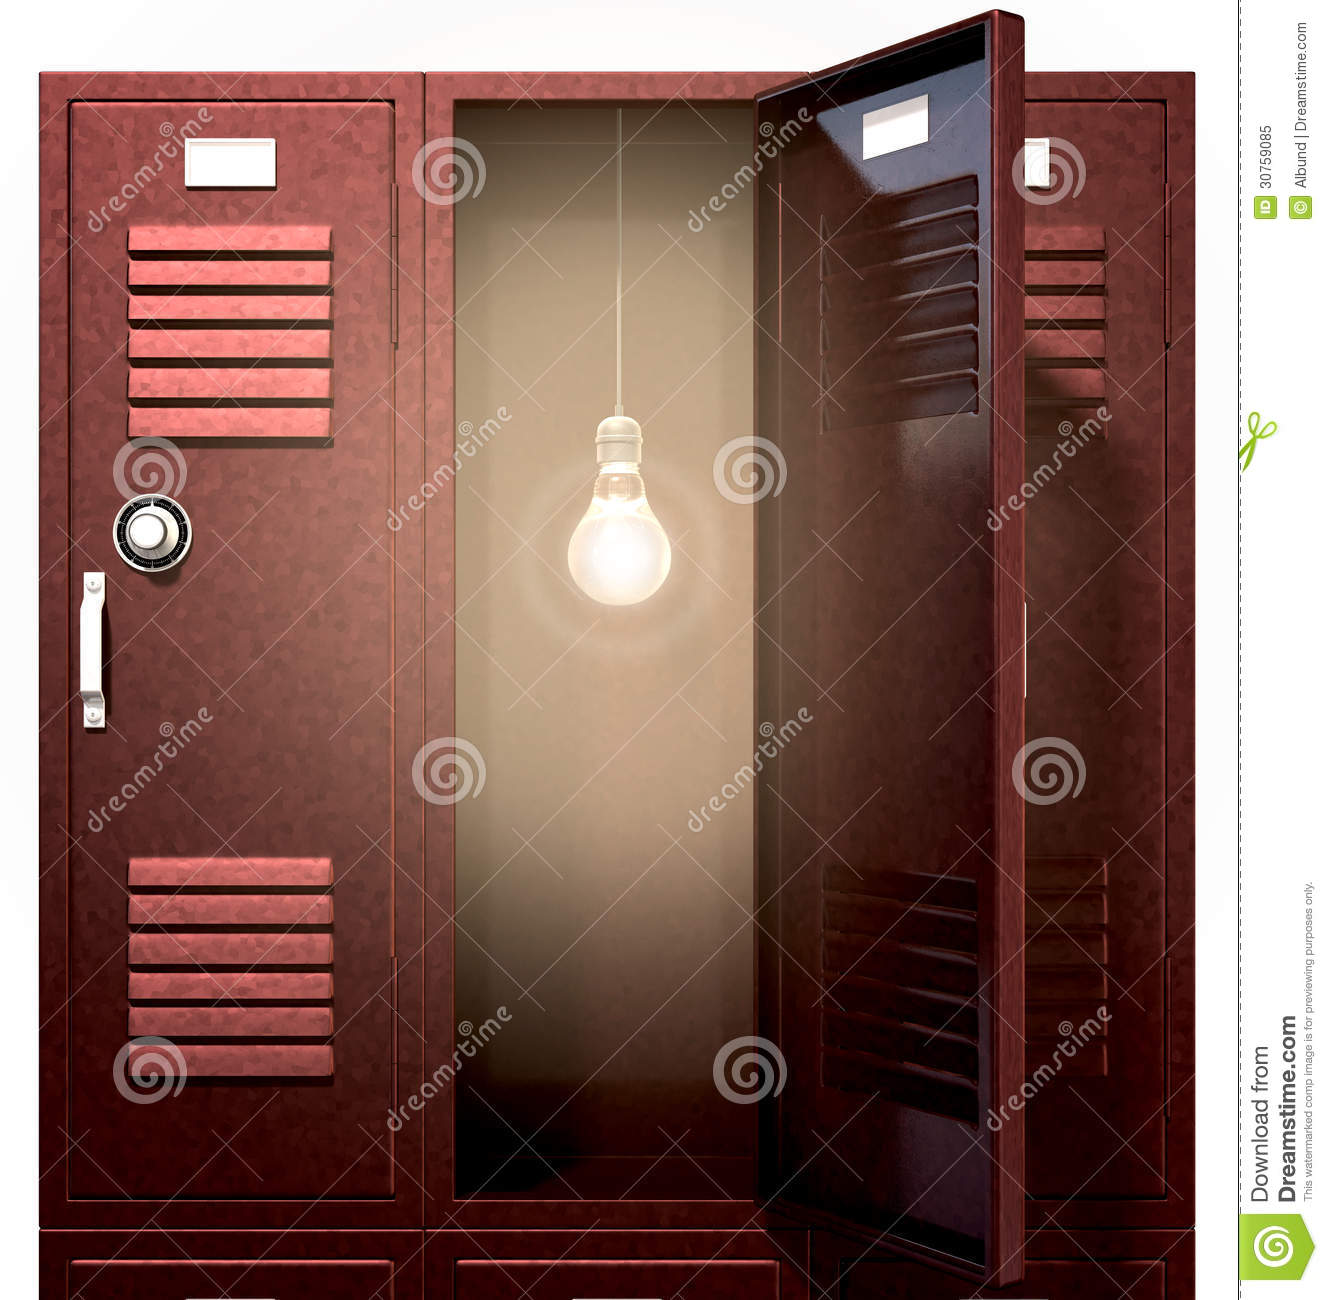 Red School Lockers With Light Bulb Inside Front Royalty